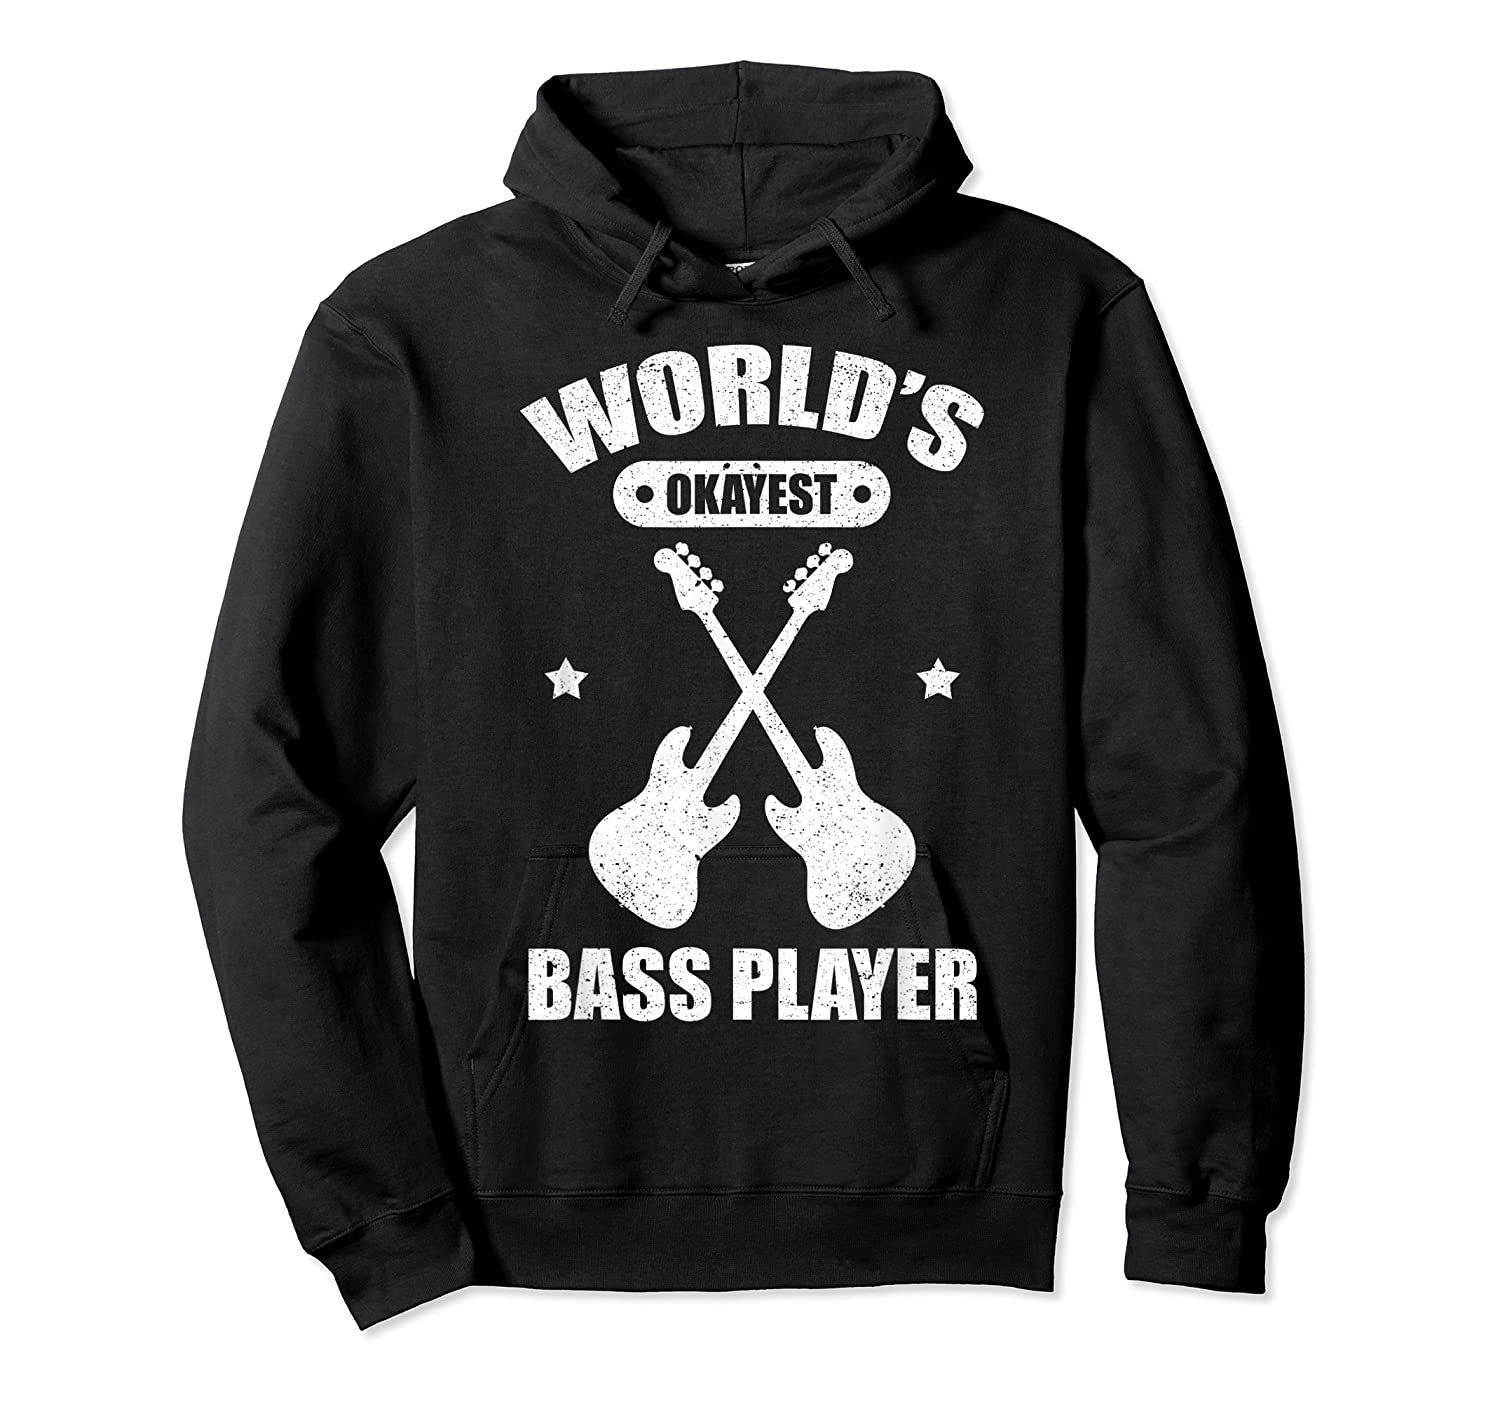 World's Okayest Bass Guitar Player Funny Music Lover Shirts Unisex Pullover Hoodie